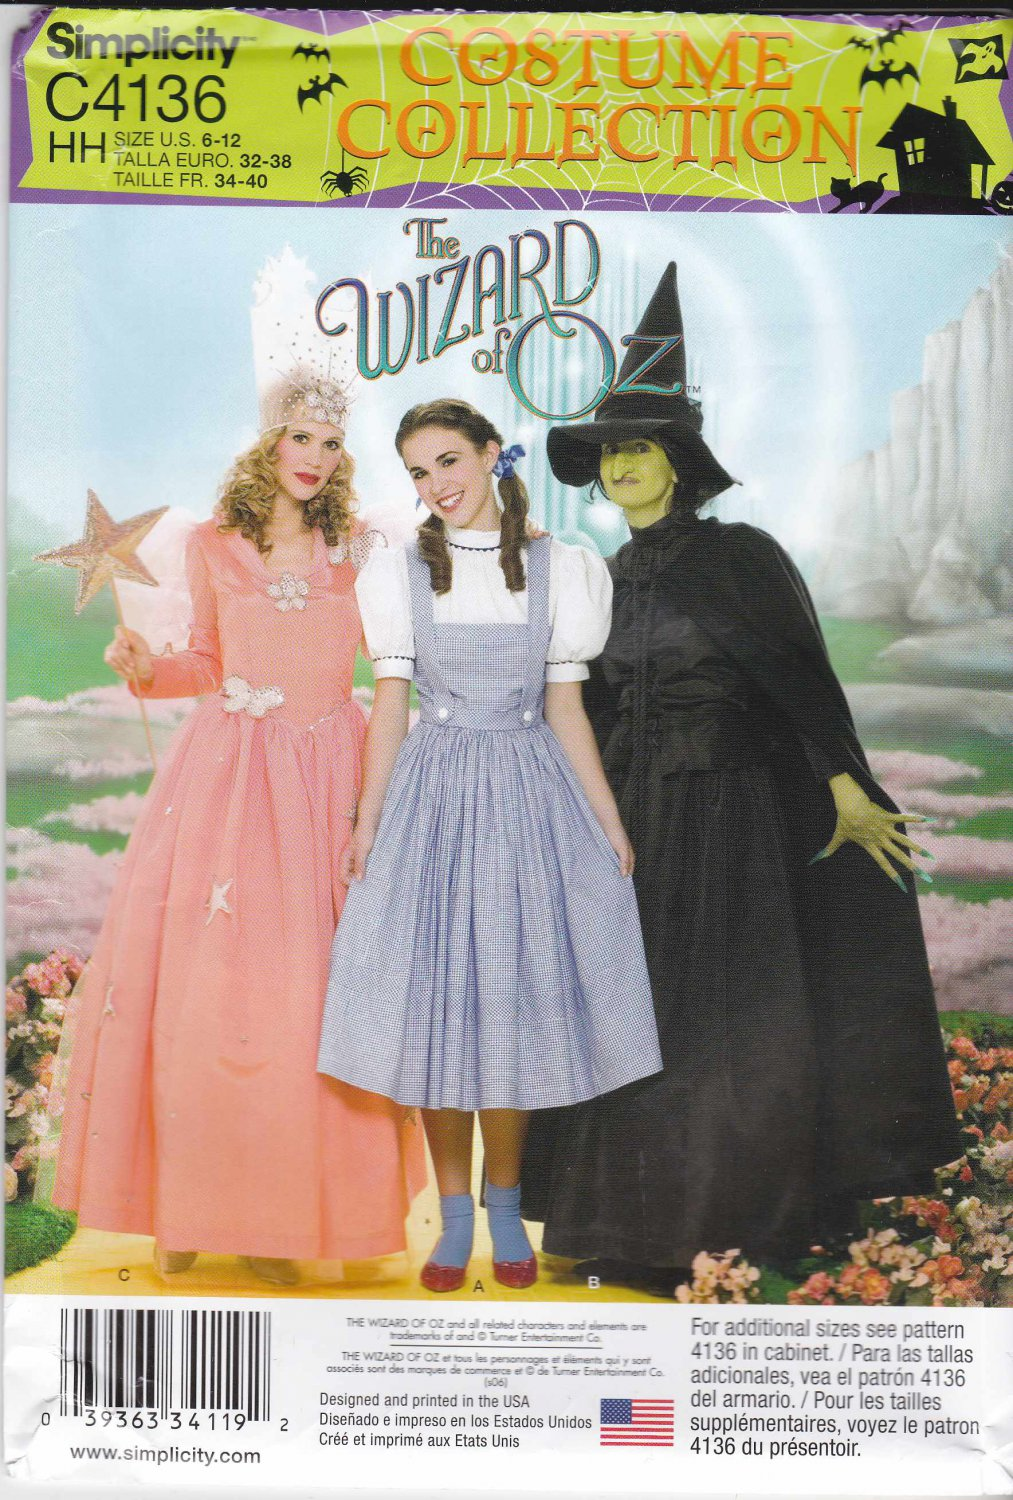 Simplicity Sewing Pattern C4136 4136 Misses Sizes 6-12 Wizard of ...